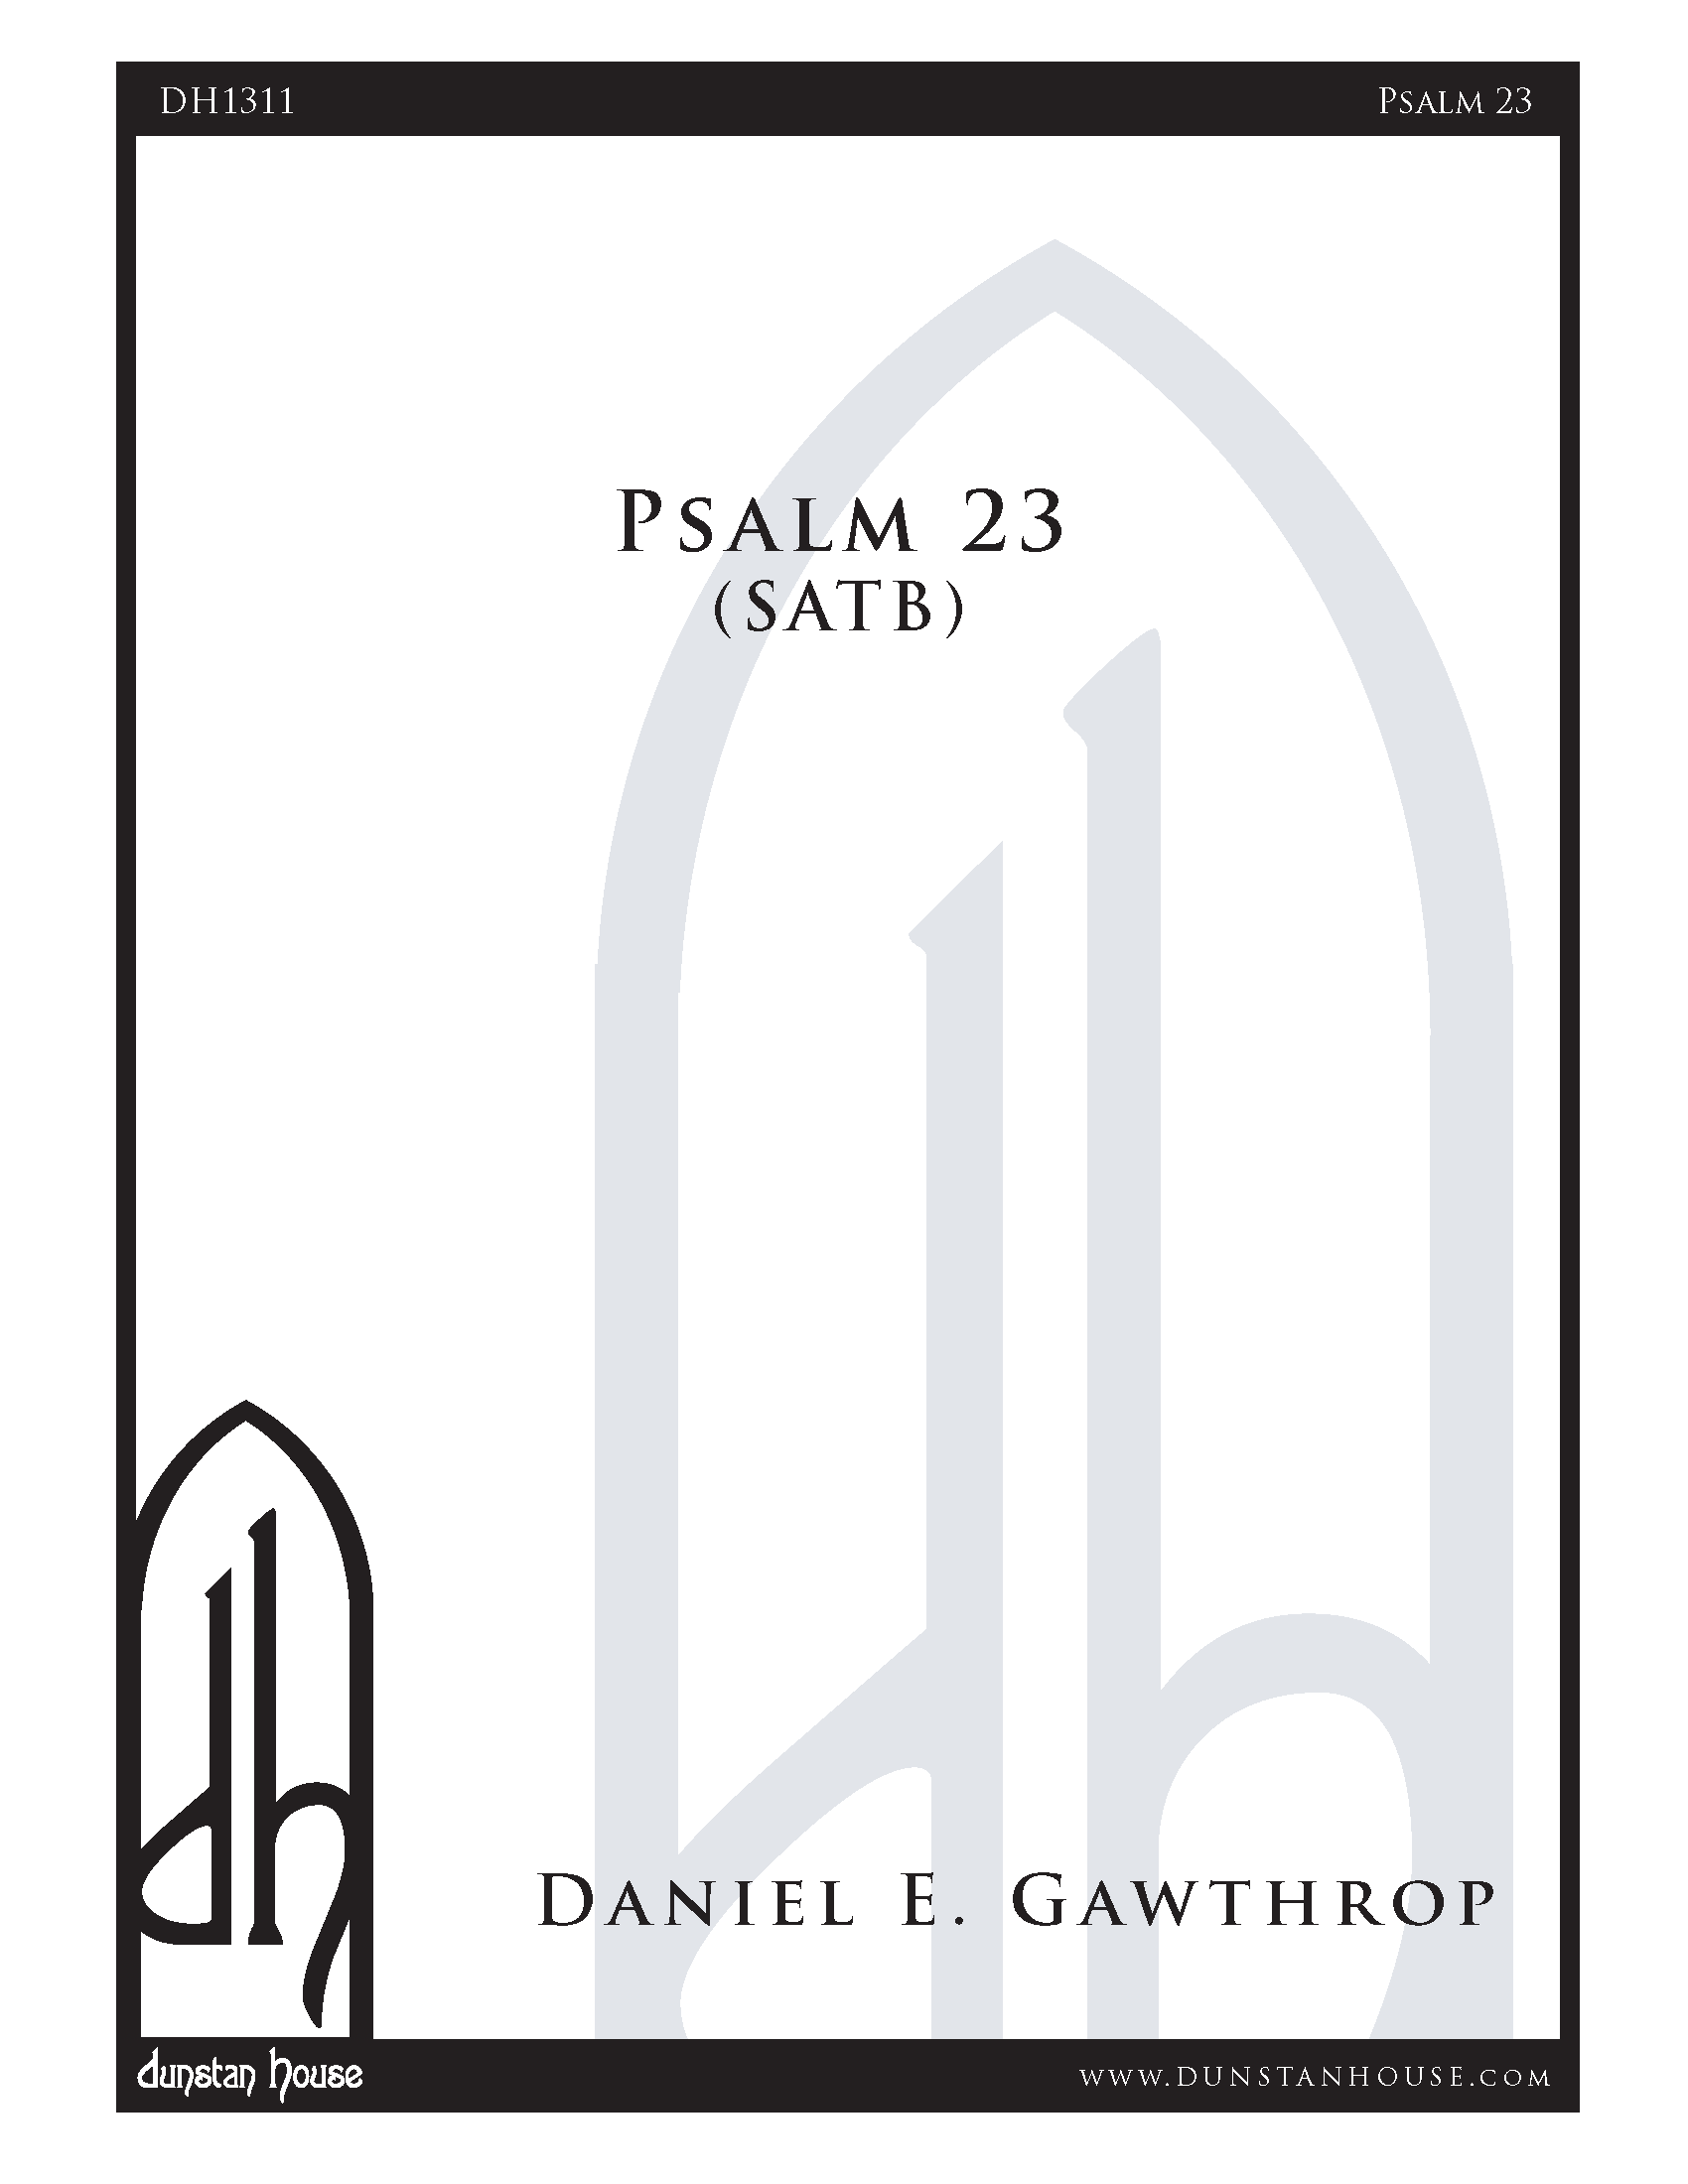 Psalm 23 for SATB Chorus, a cappella